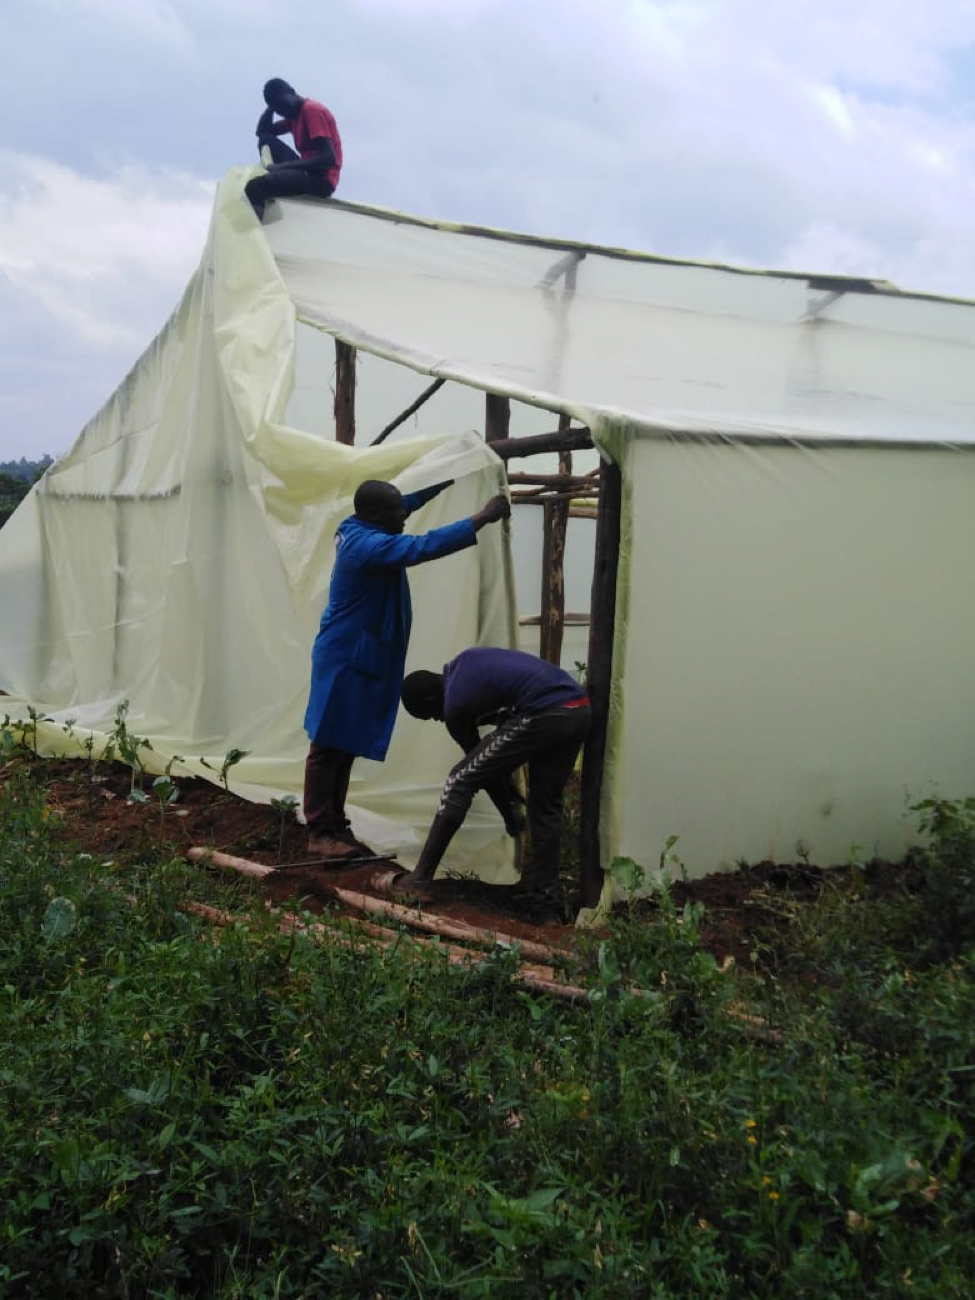 The Greenhouse Project in Musingu, rural Kakamega district is helping local small farmers to combat the devastating effects of exceptionally heavy rains alternating with periods of drought. The first polytunnel was erected in November 2020 amidst rising excitement in the local community. The soil has been prepared and 1000 seedlings are ready for planting. Following an initial training programme led by local experts, it will be run by the trainees as a cooperative venture. This has all been made possible by a generous grant from Quaker Peace and Social Witness. Over the next two years we hope to extend the programme with further groups of trainees building and managing additional greenhouses to generate an income for the farmers. It will be possible to grow a wider range of vegetables to improve the diet of the community. We hope that young people will now see agriculture as a good career choice.